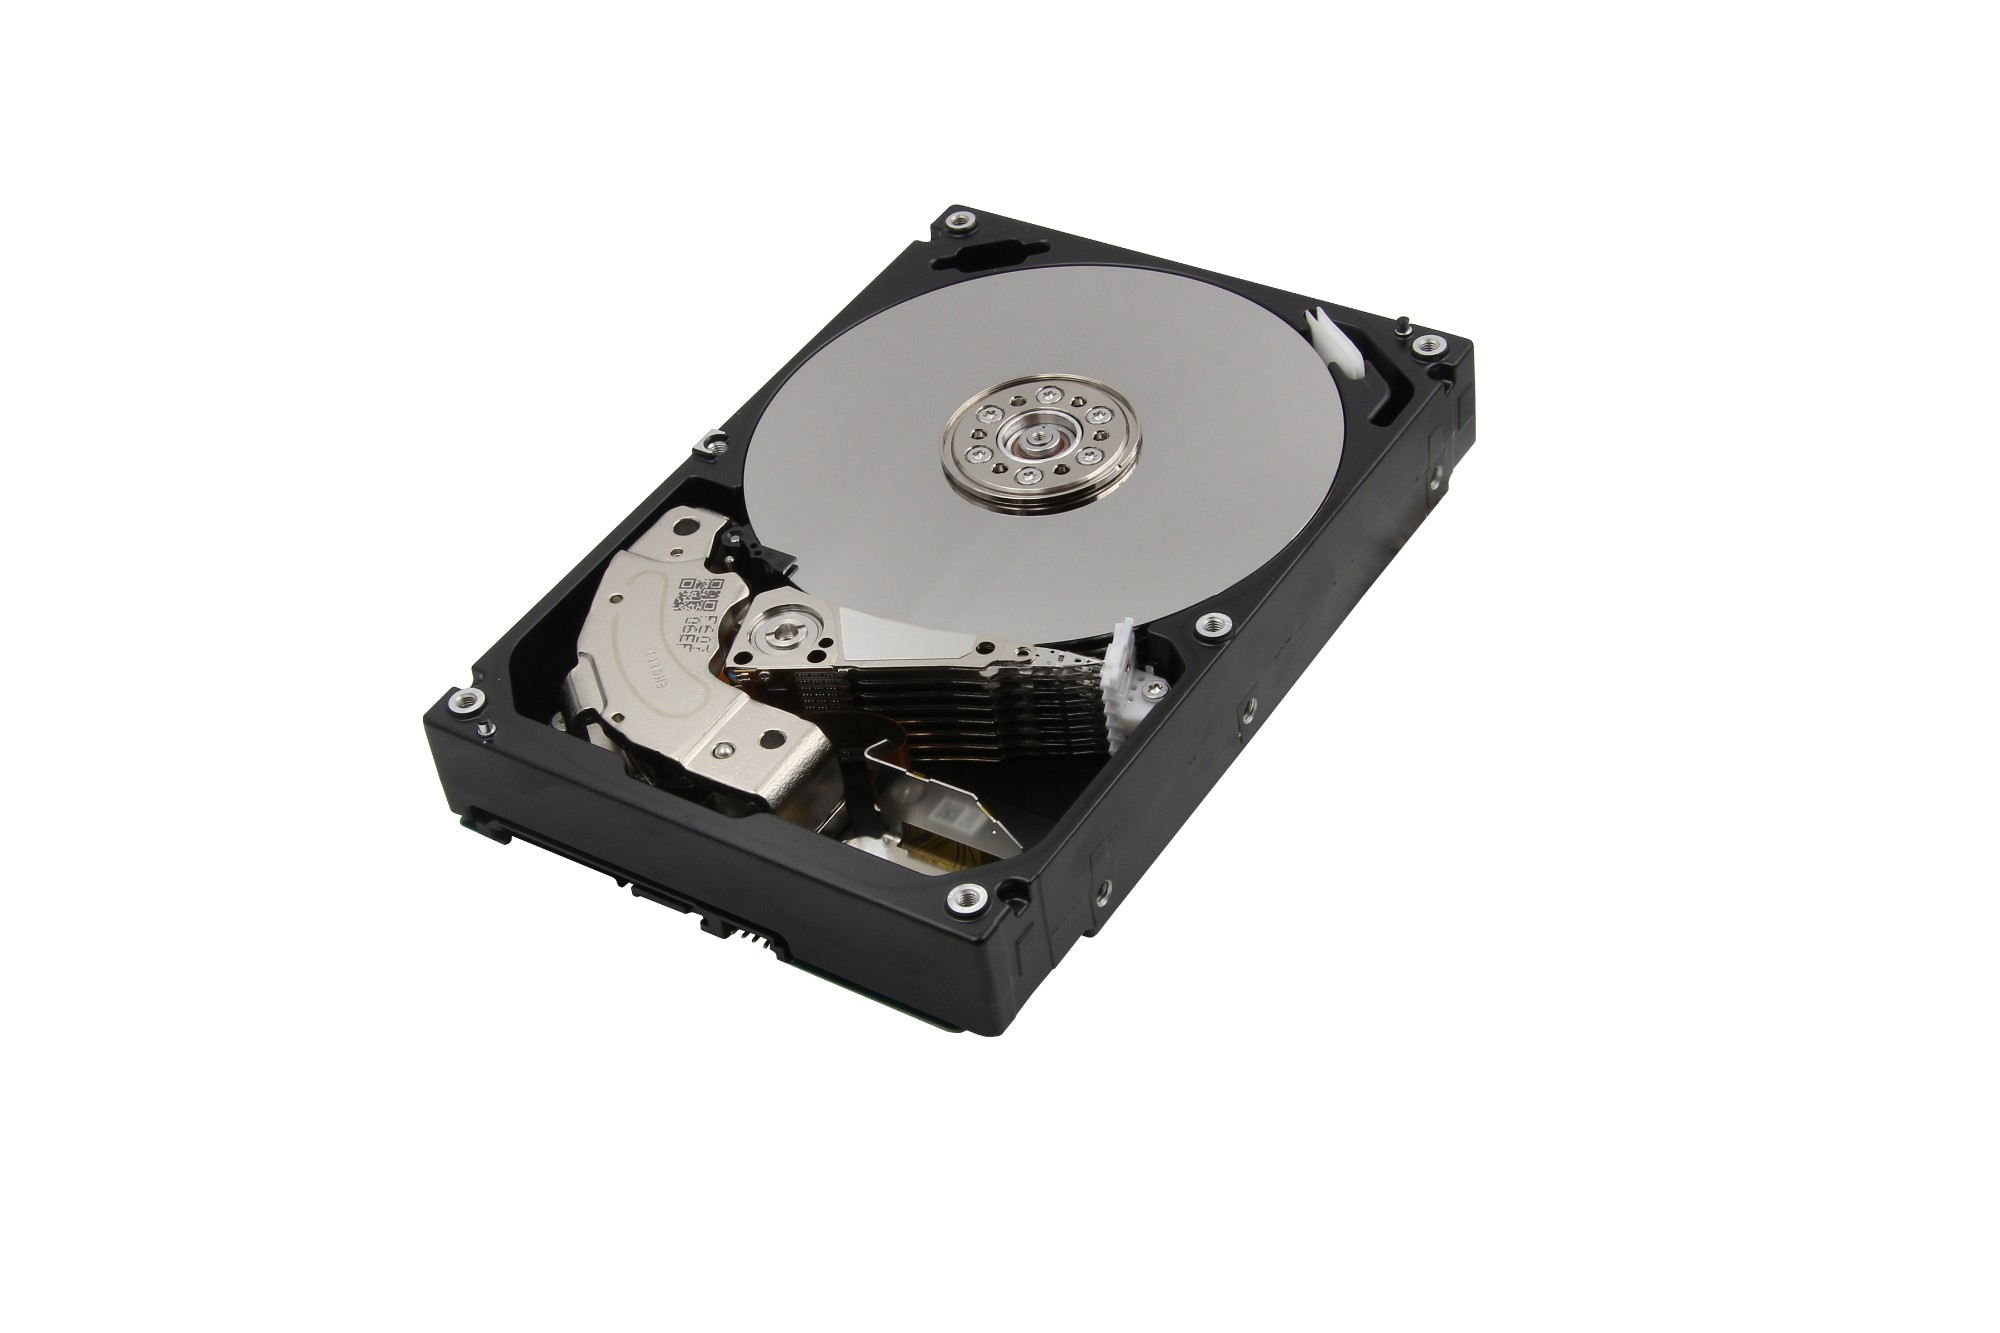 Hard Drive Nearline He 10TB SATA 6gb/s 3.5in 7200rpm 256MB 512e